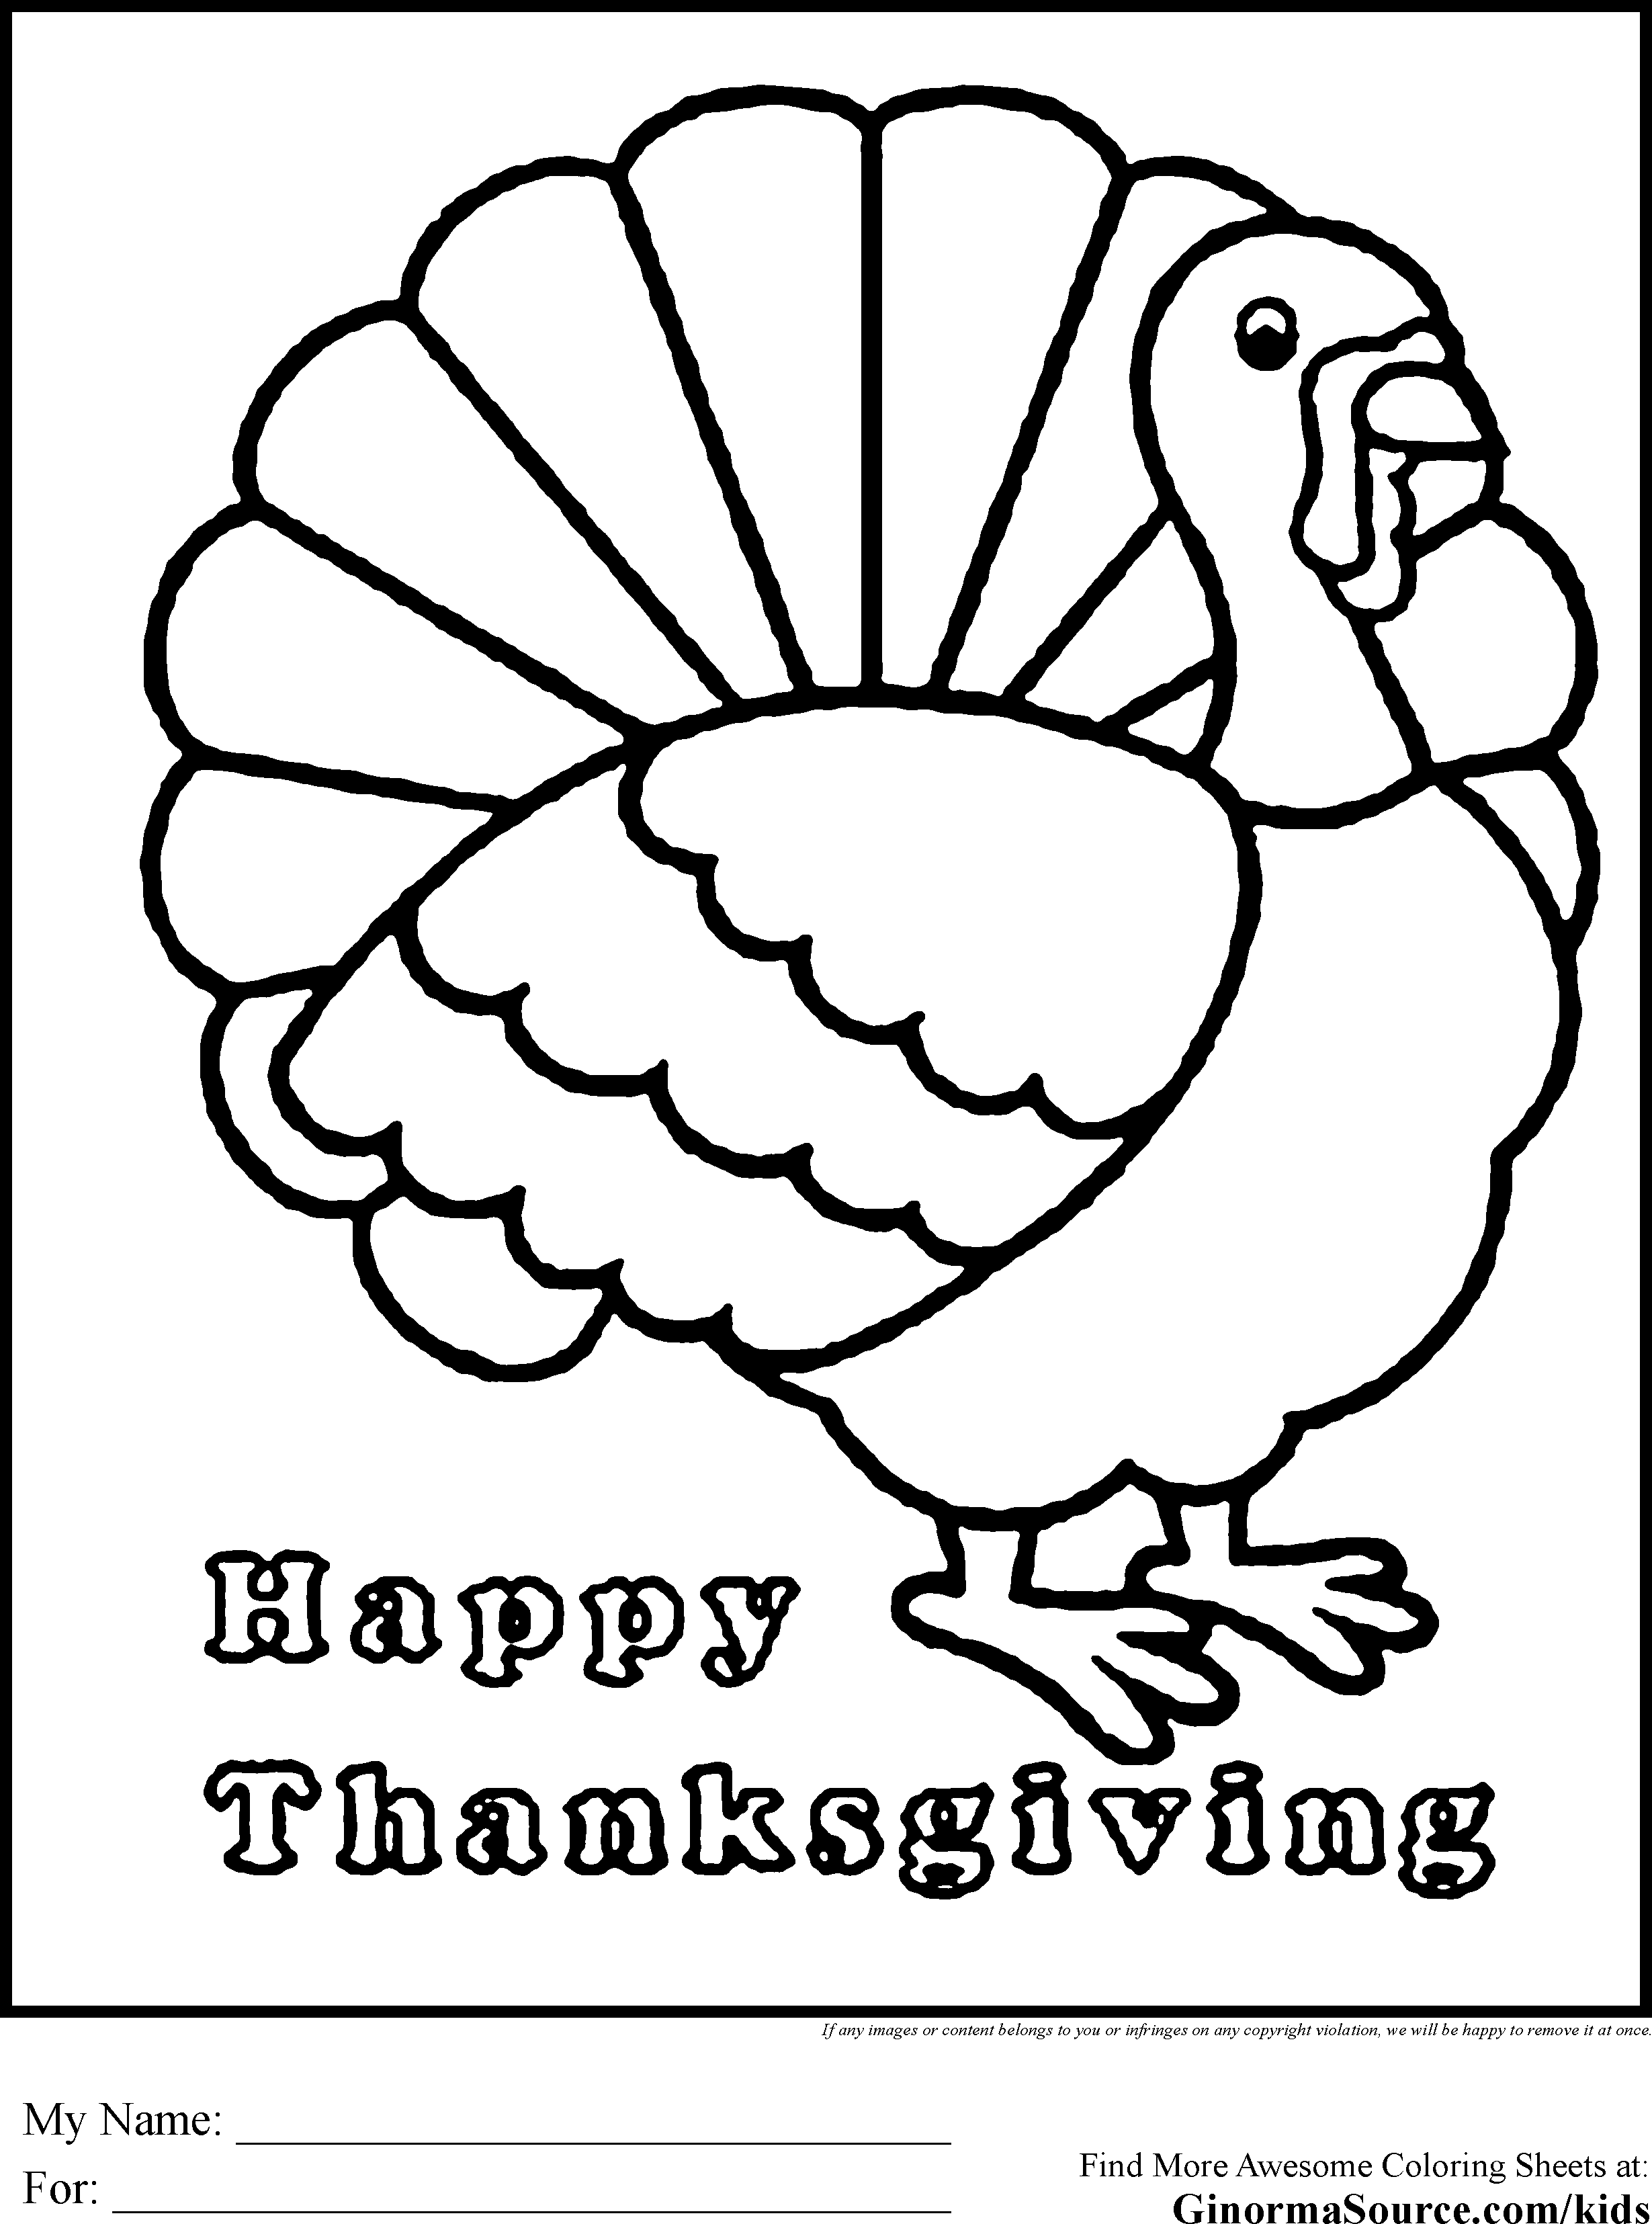 Free N Fun Thanksgiving Coloring Pages : Printable Religious Thanksgiving Coloring Pages Coloring Home